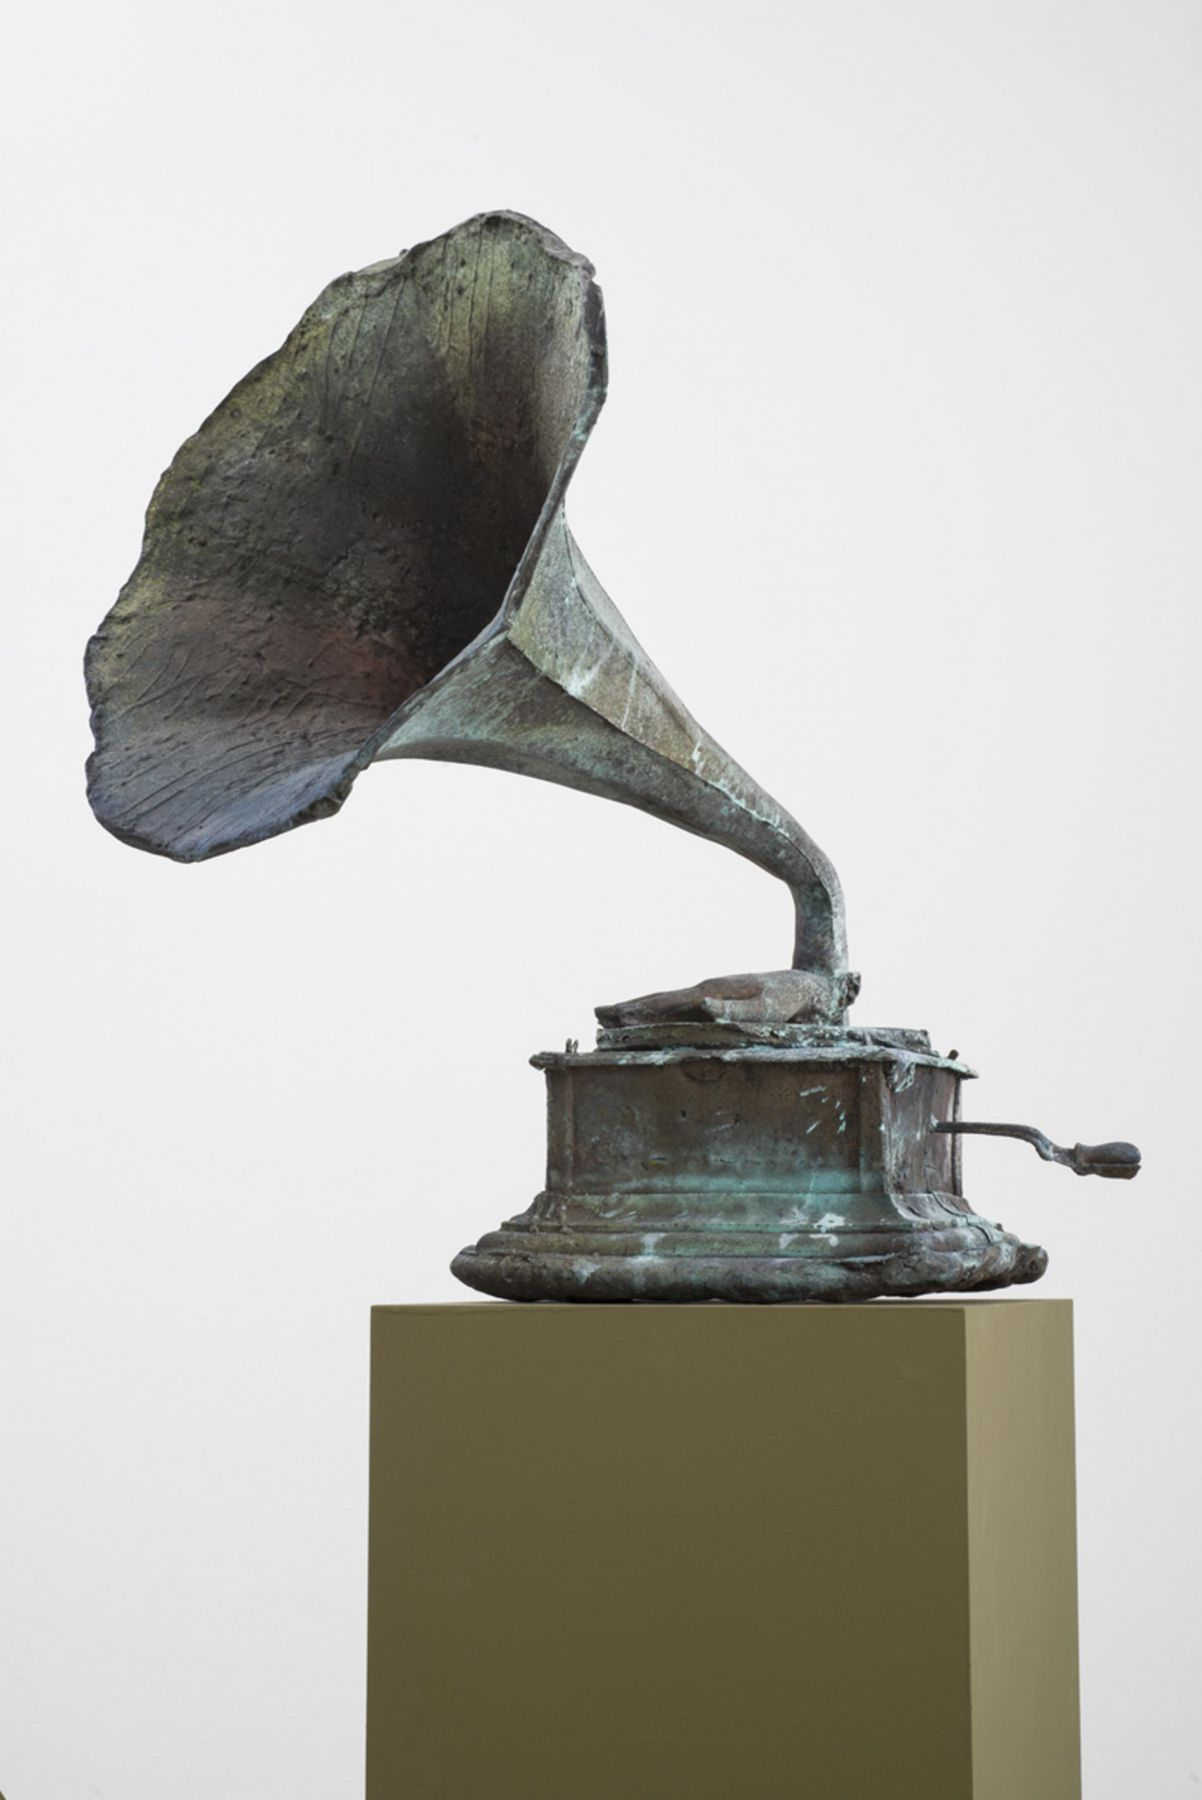 , FOLKERT DE JONG The Last Definition of Ideas, 2014 Patinated bronze 30 1/2 x 27 x 25 1/2 in. (77.5 x 68.6 x 64.8 cm)